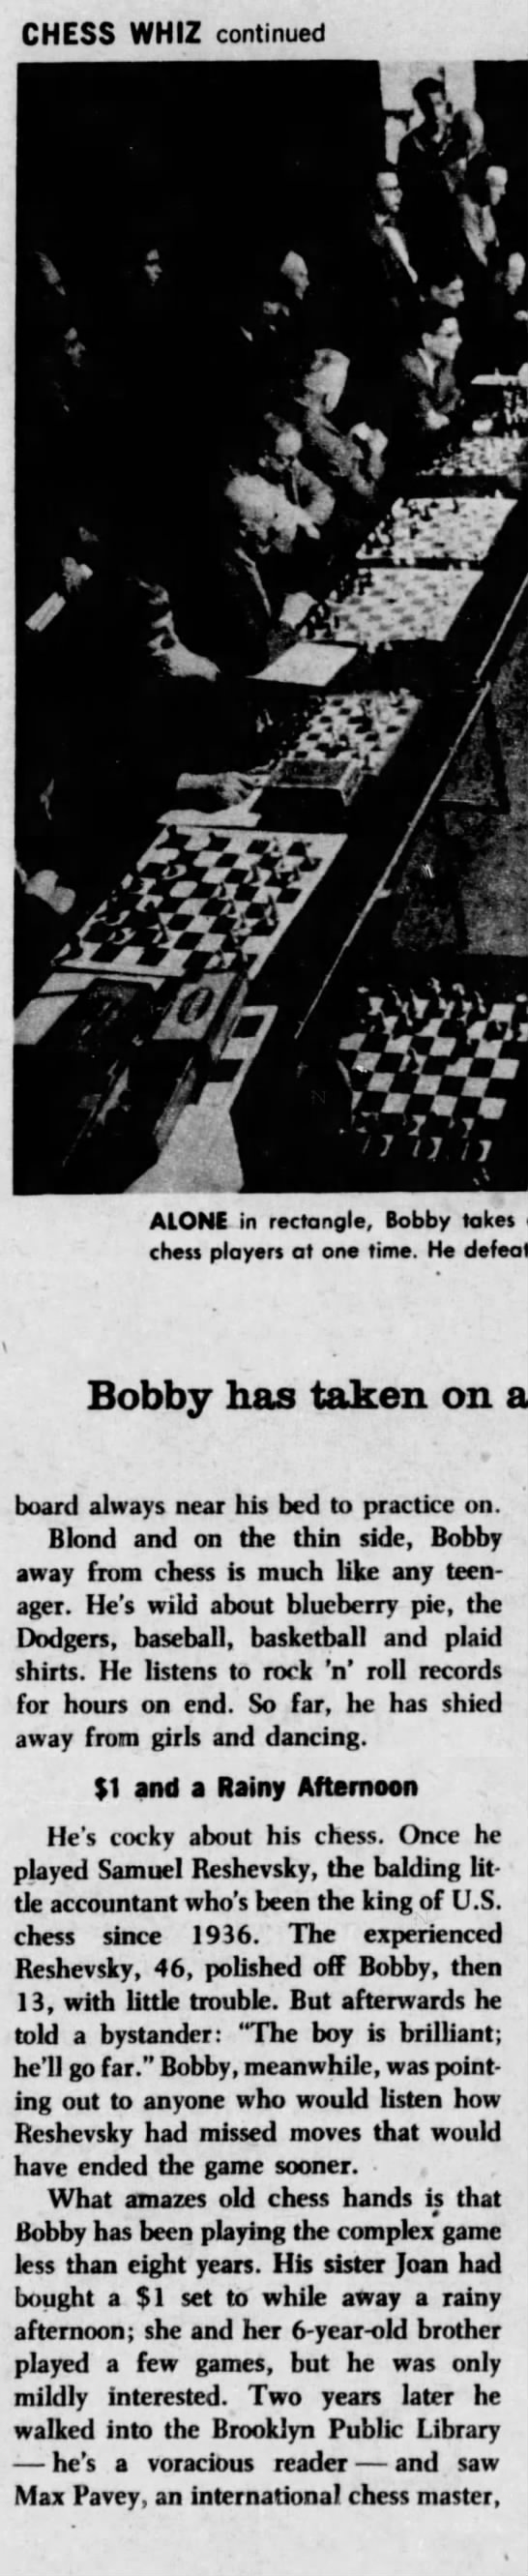 Only 14, he's a chess whiz (Column 4) -